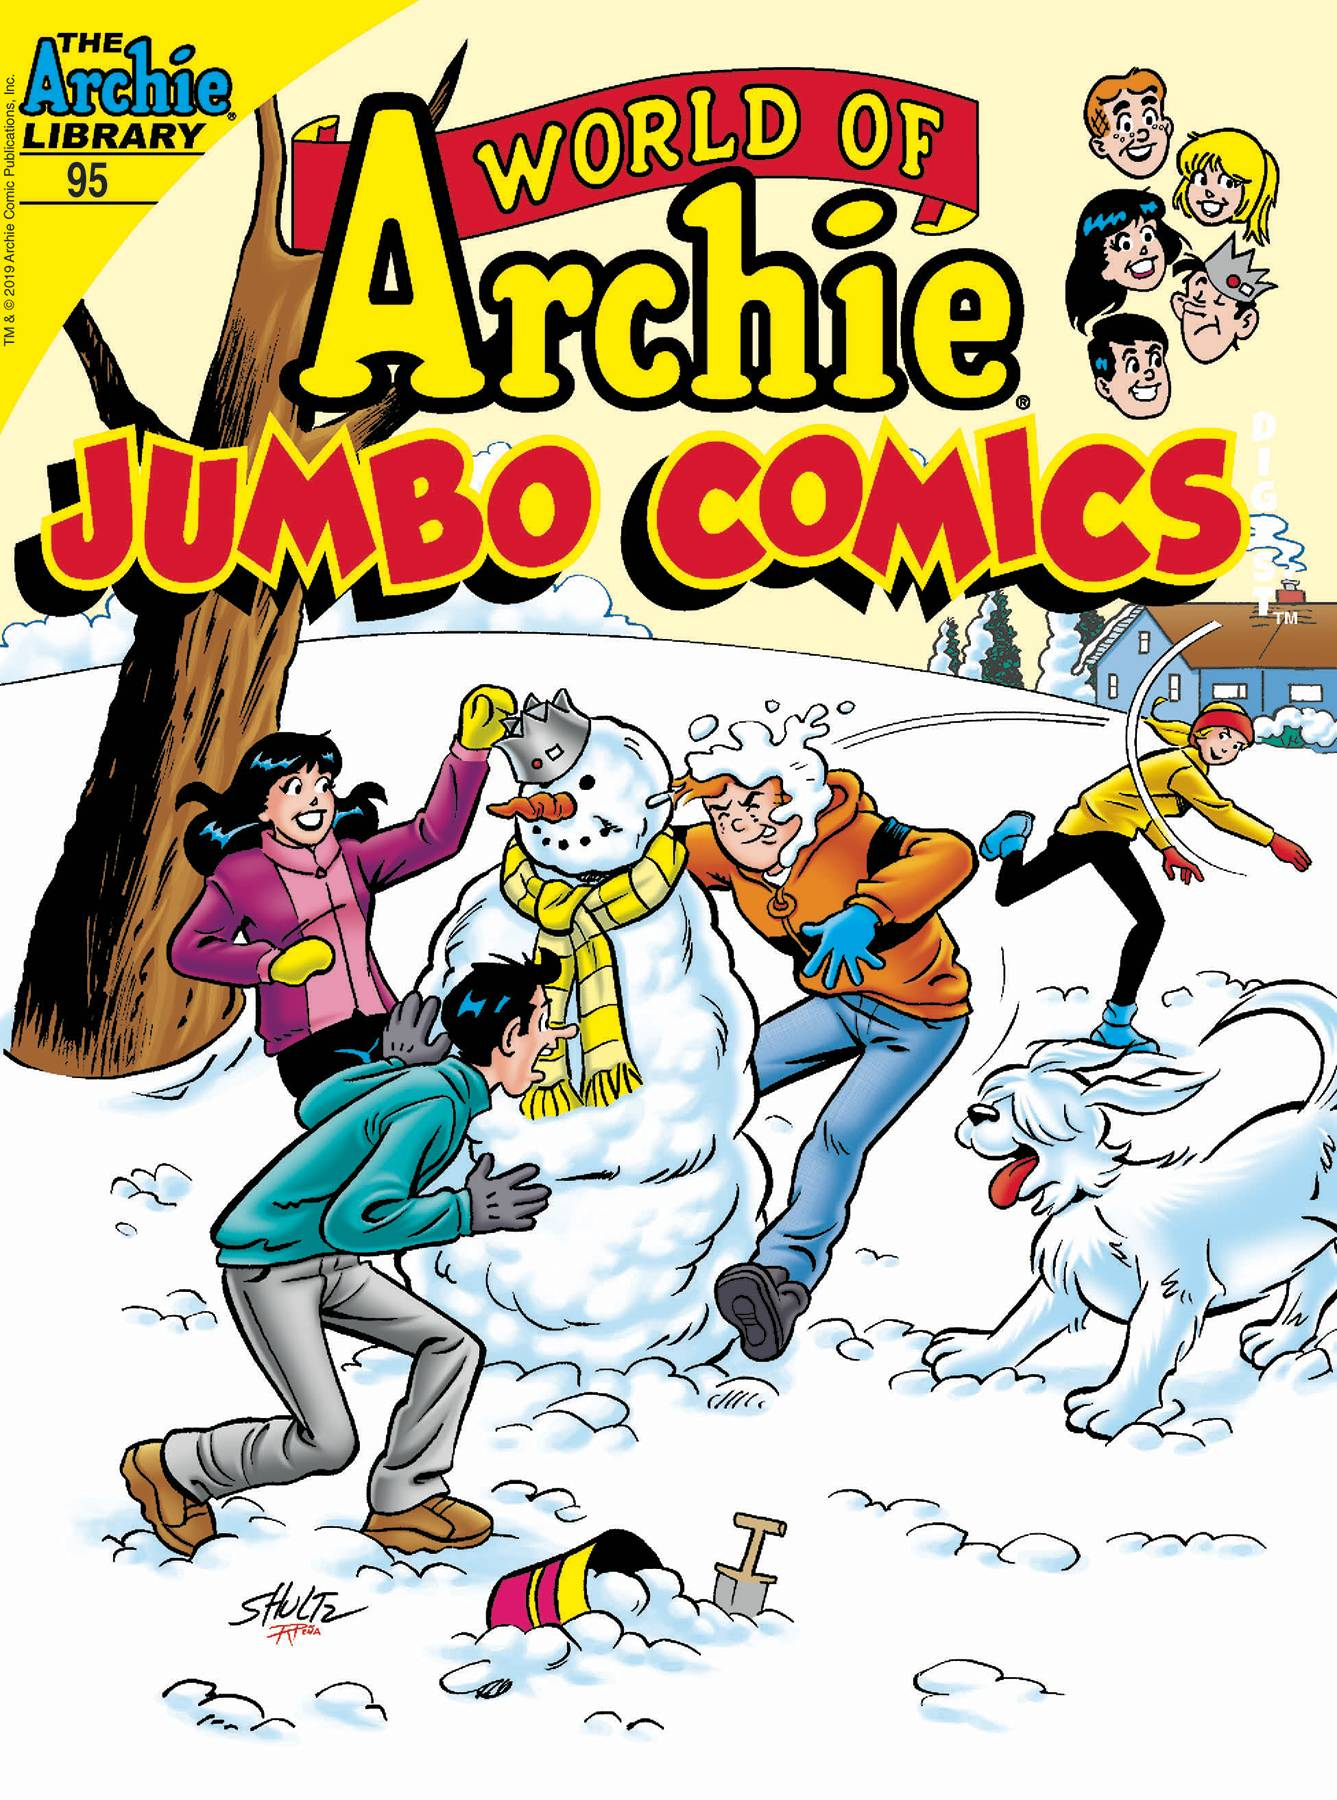 WORLD OF ARCHIE JUMBO COMICS DIGEST #95